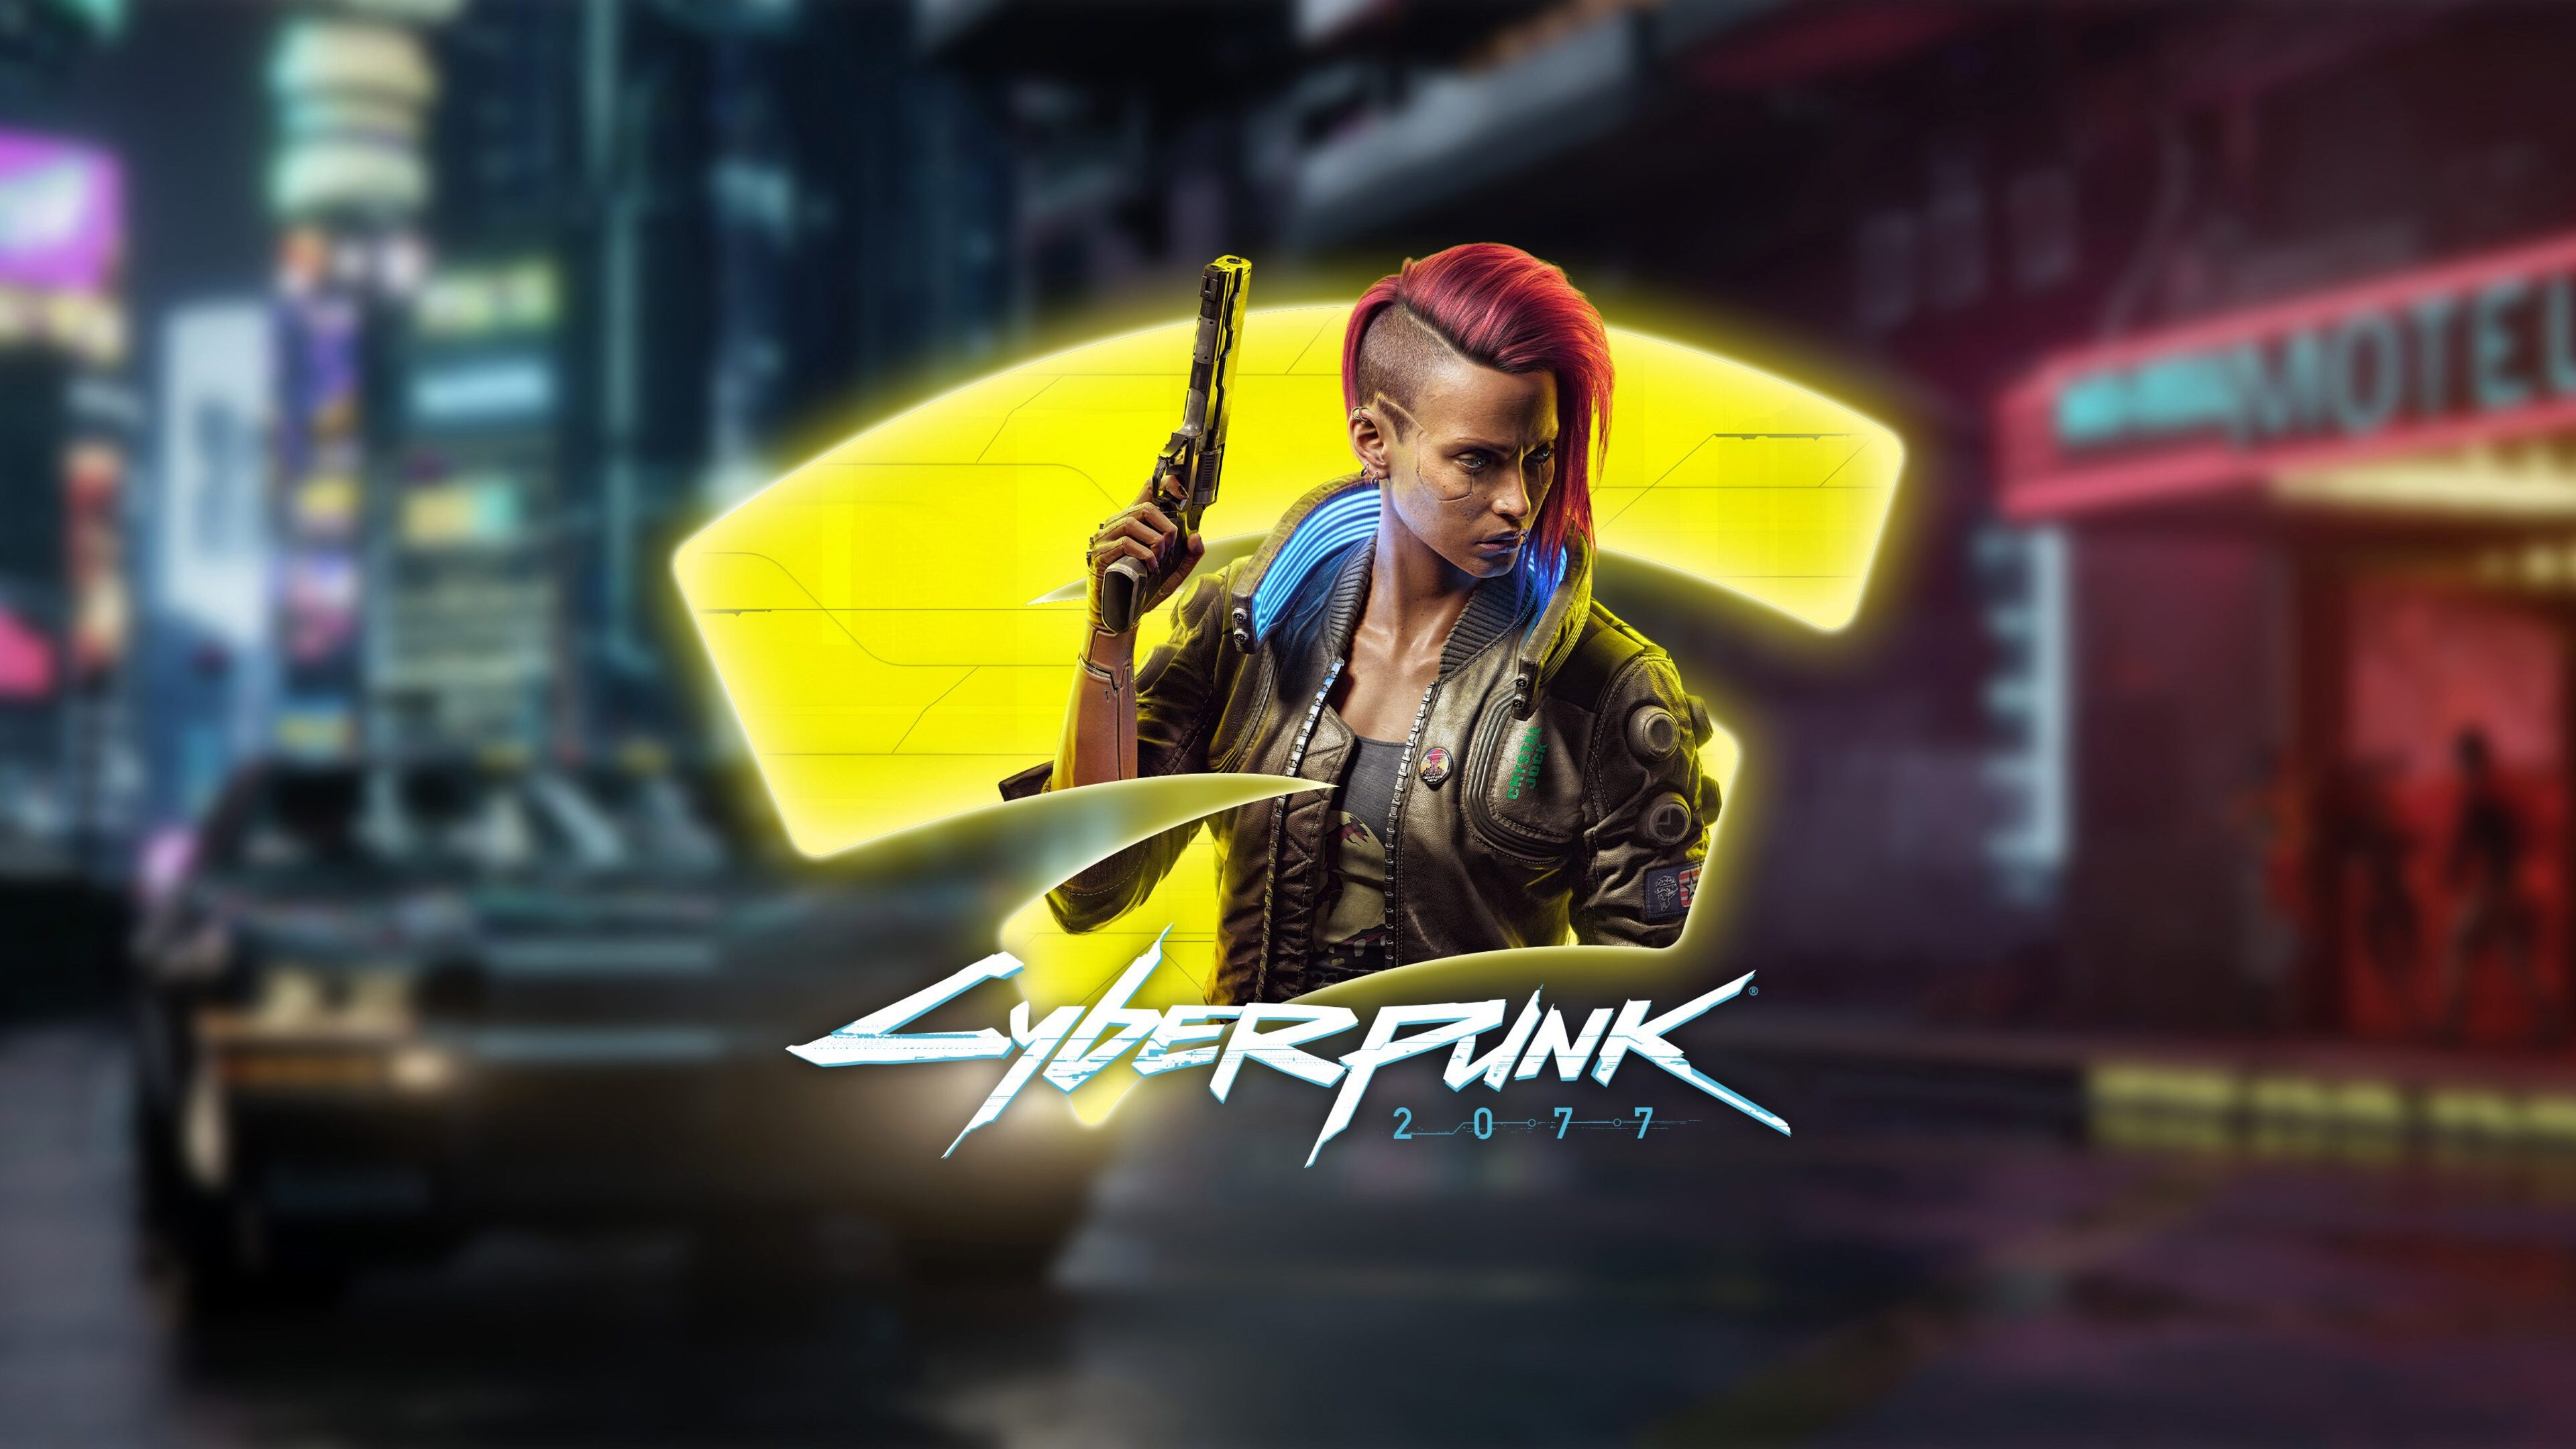 game-cyberpunk-2077-new-cu.jpg